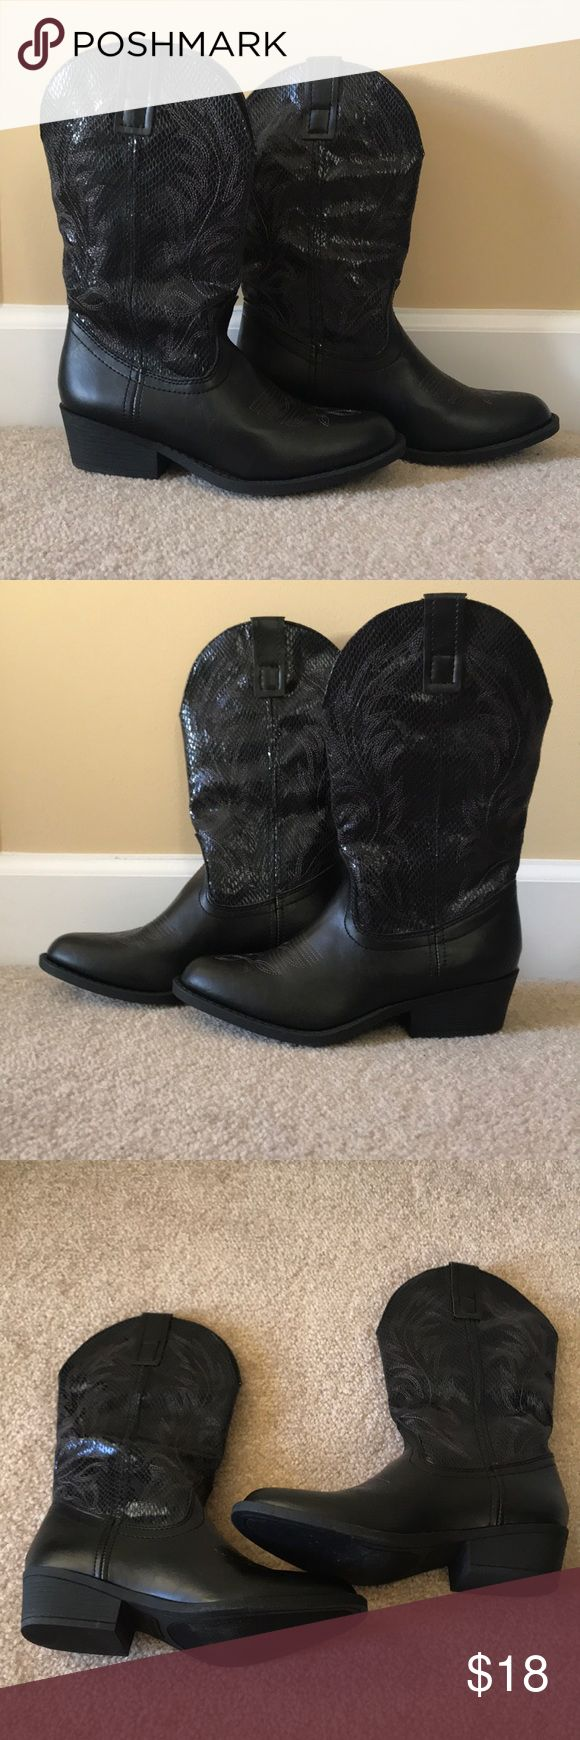 Ladies black cowboy boots Ladies Rampage black cowboy boots. Brand new, without tags. Never worn outside. Some carpet fibers on bottom from trying on. Excellent condition. Perfect for southern football game days, country concerts, or just whenever you want to wear them!! :) Rampage Shoes Heeled Boots